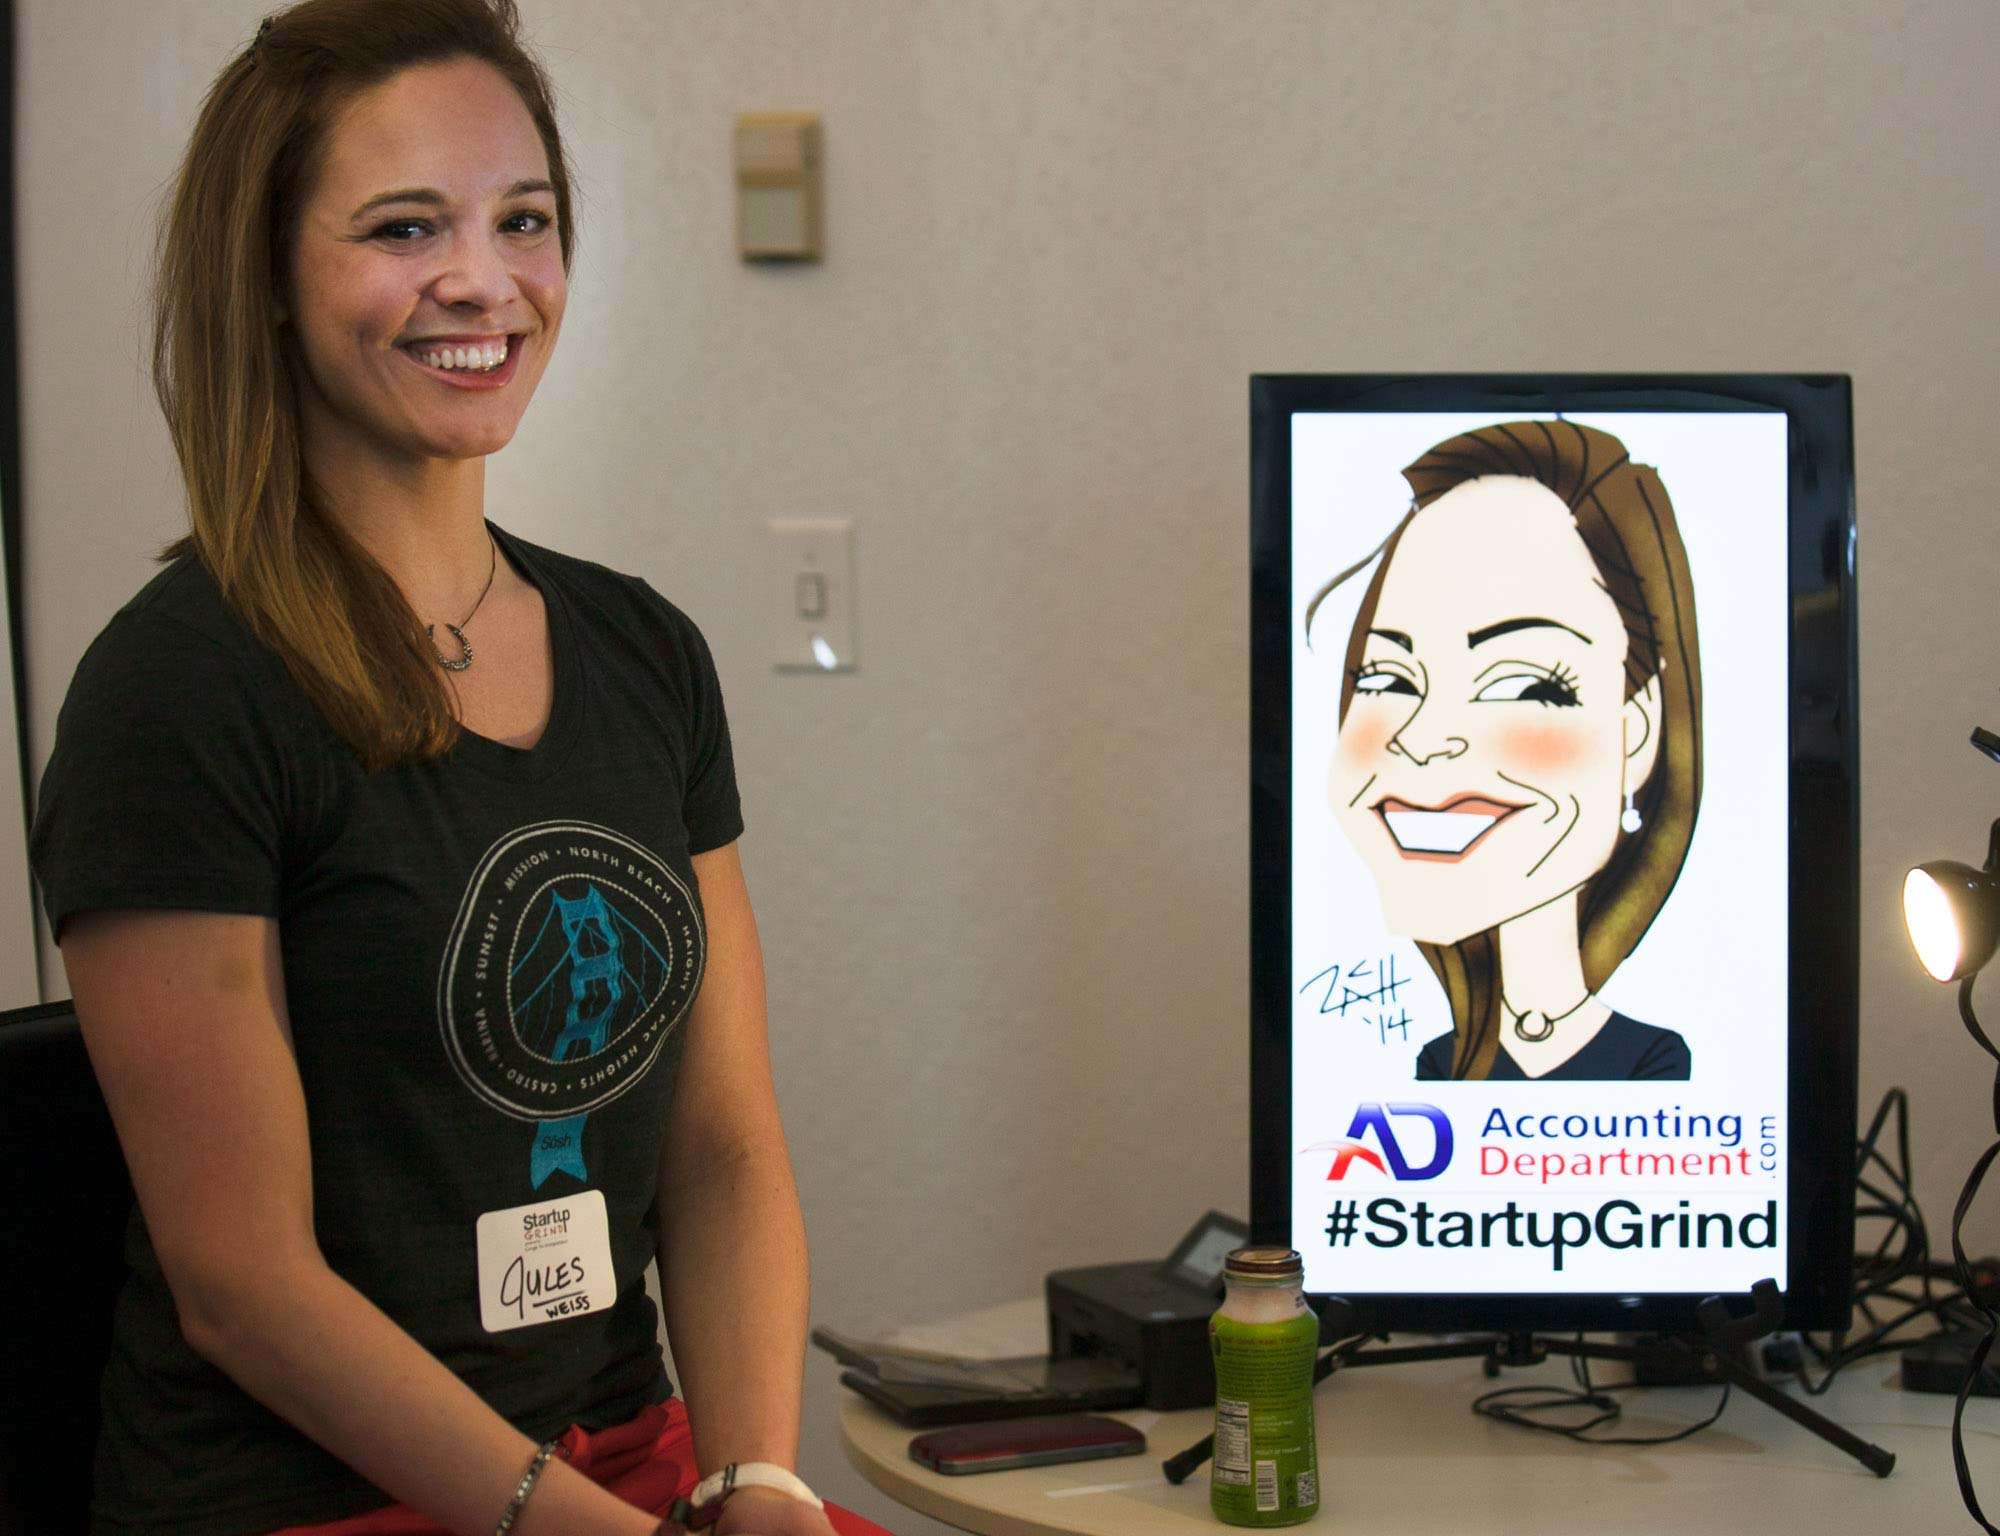 Caricature at Startup Grind 2014